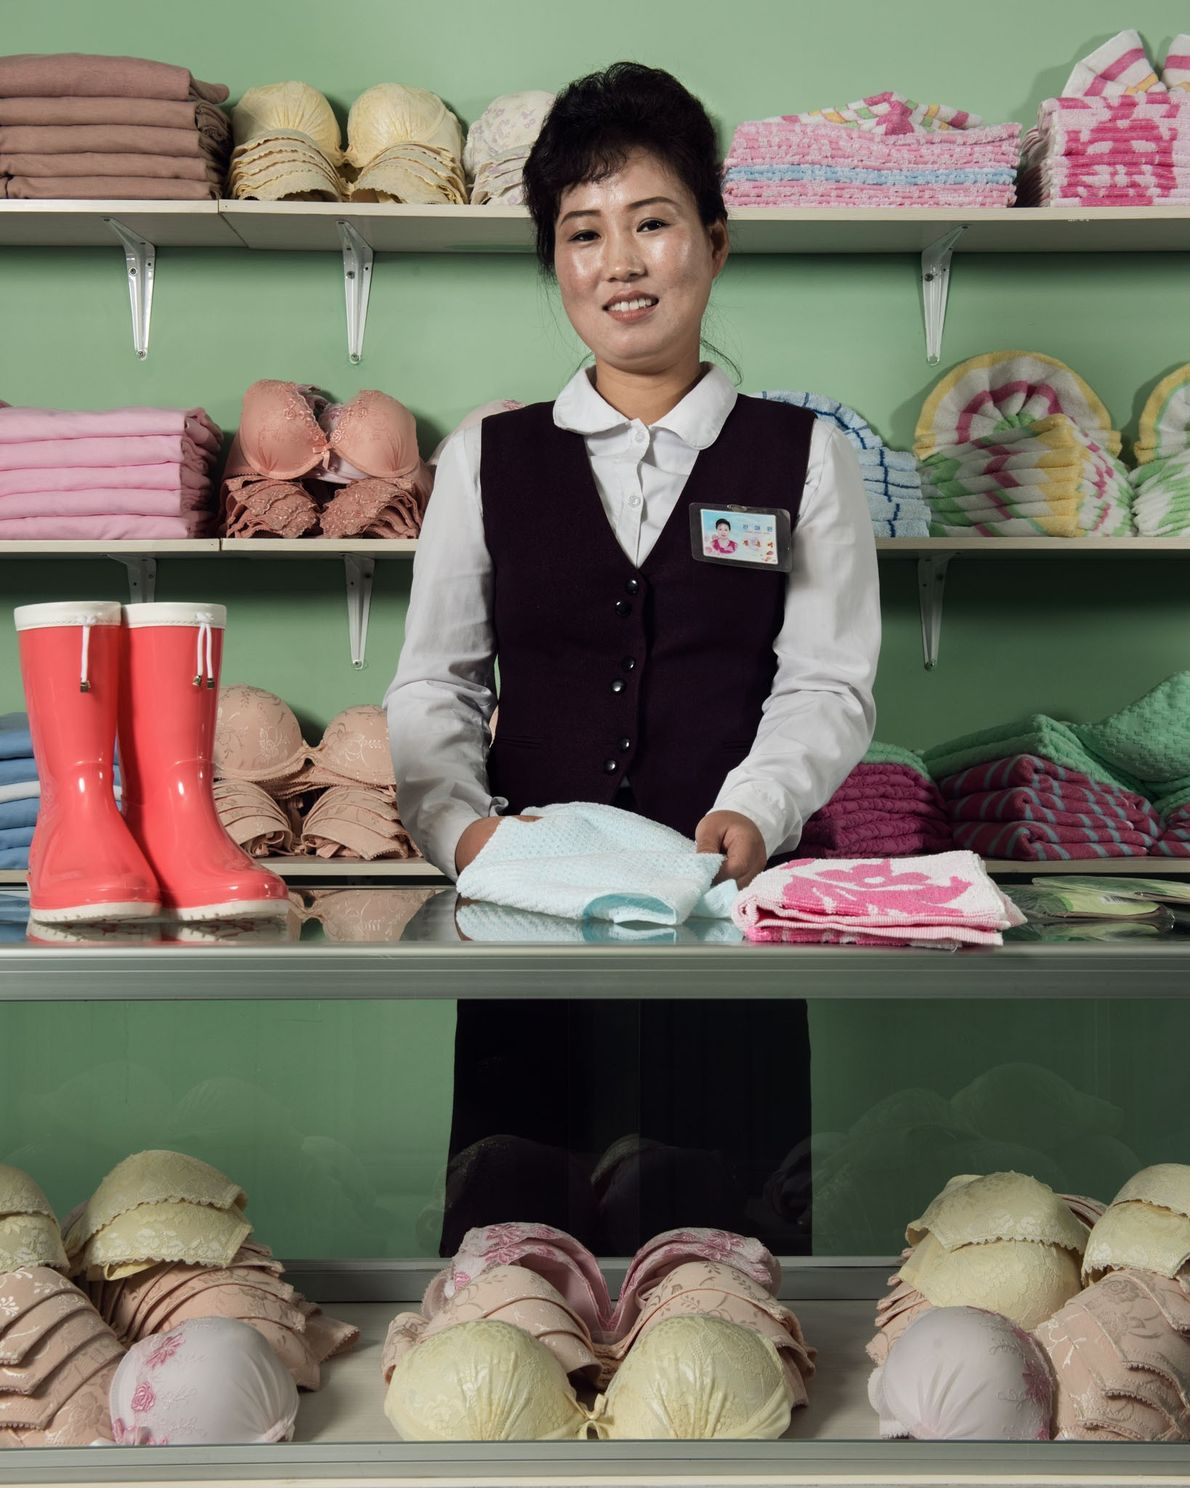 In the employee shop of the country's largest textile factory, workers can buy undergarments and other ...